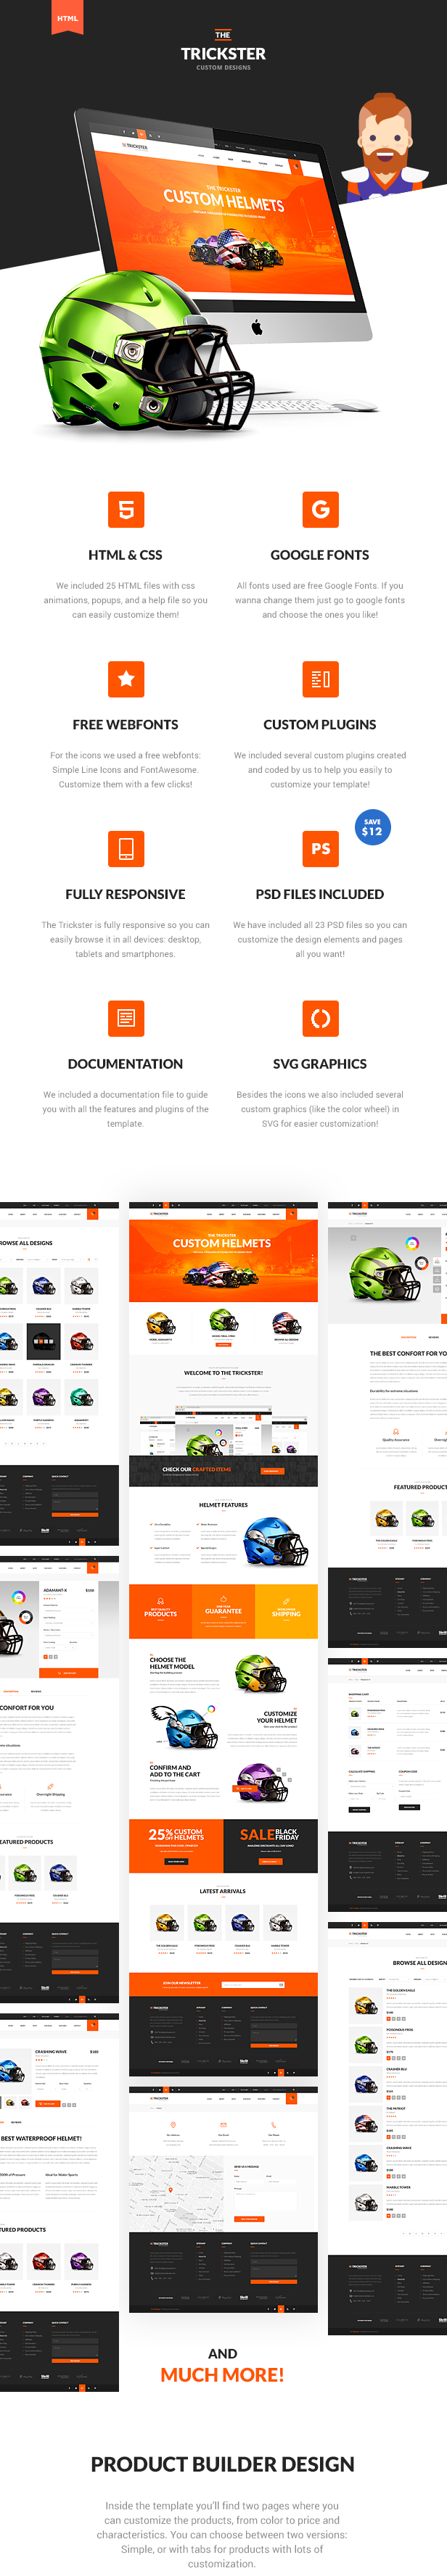 The Trickster - Multipurpose HTML Product Builder and Shop - 7